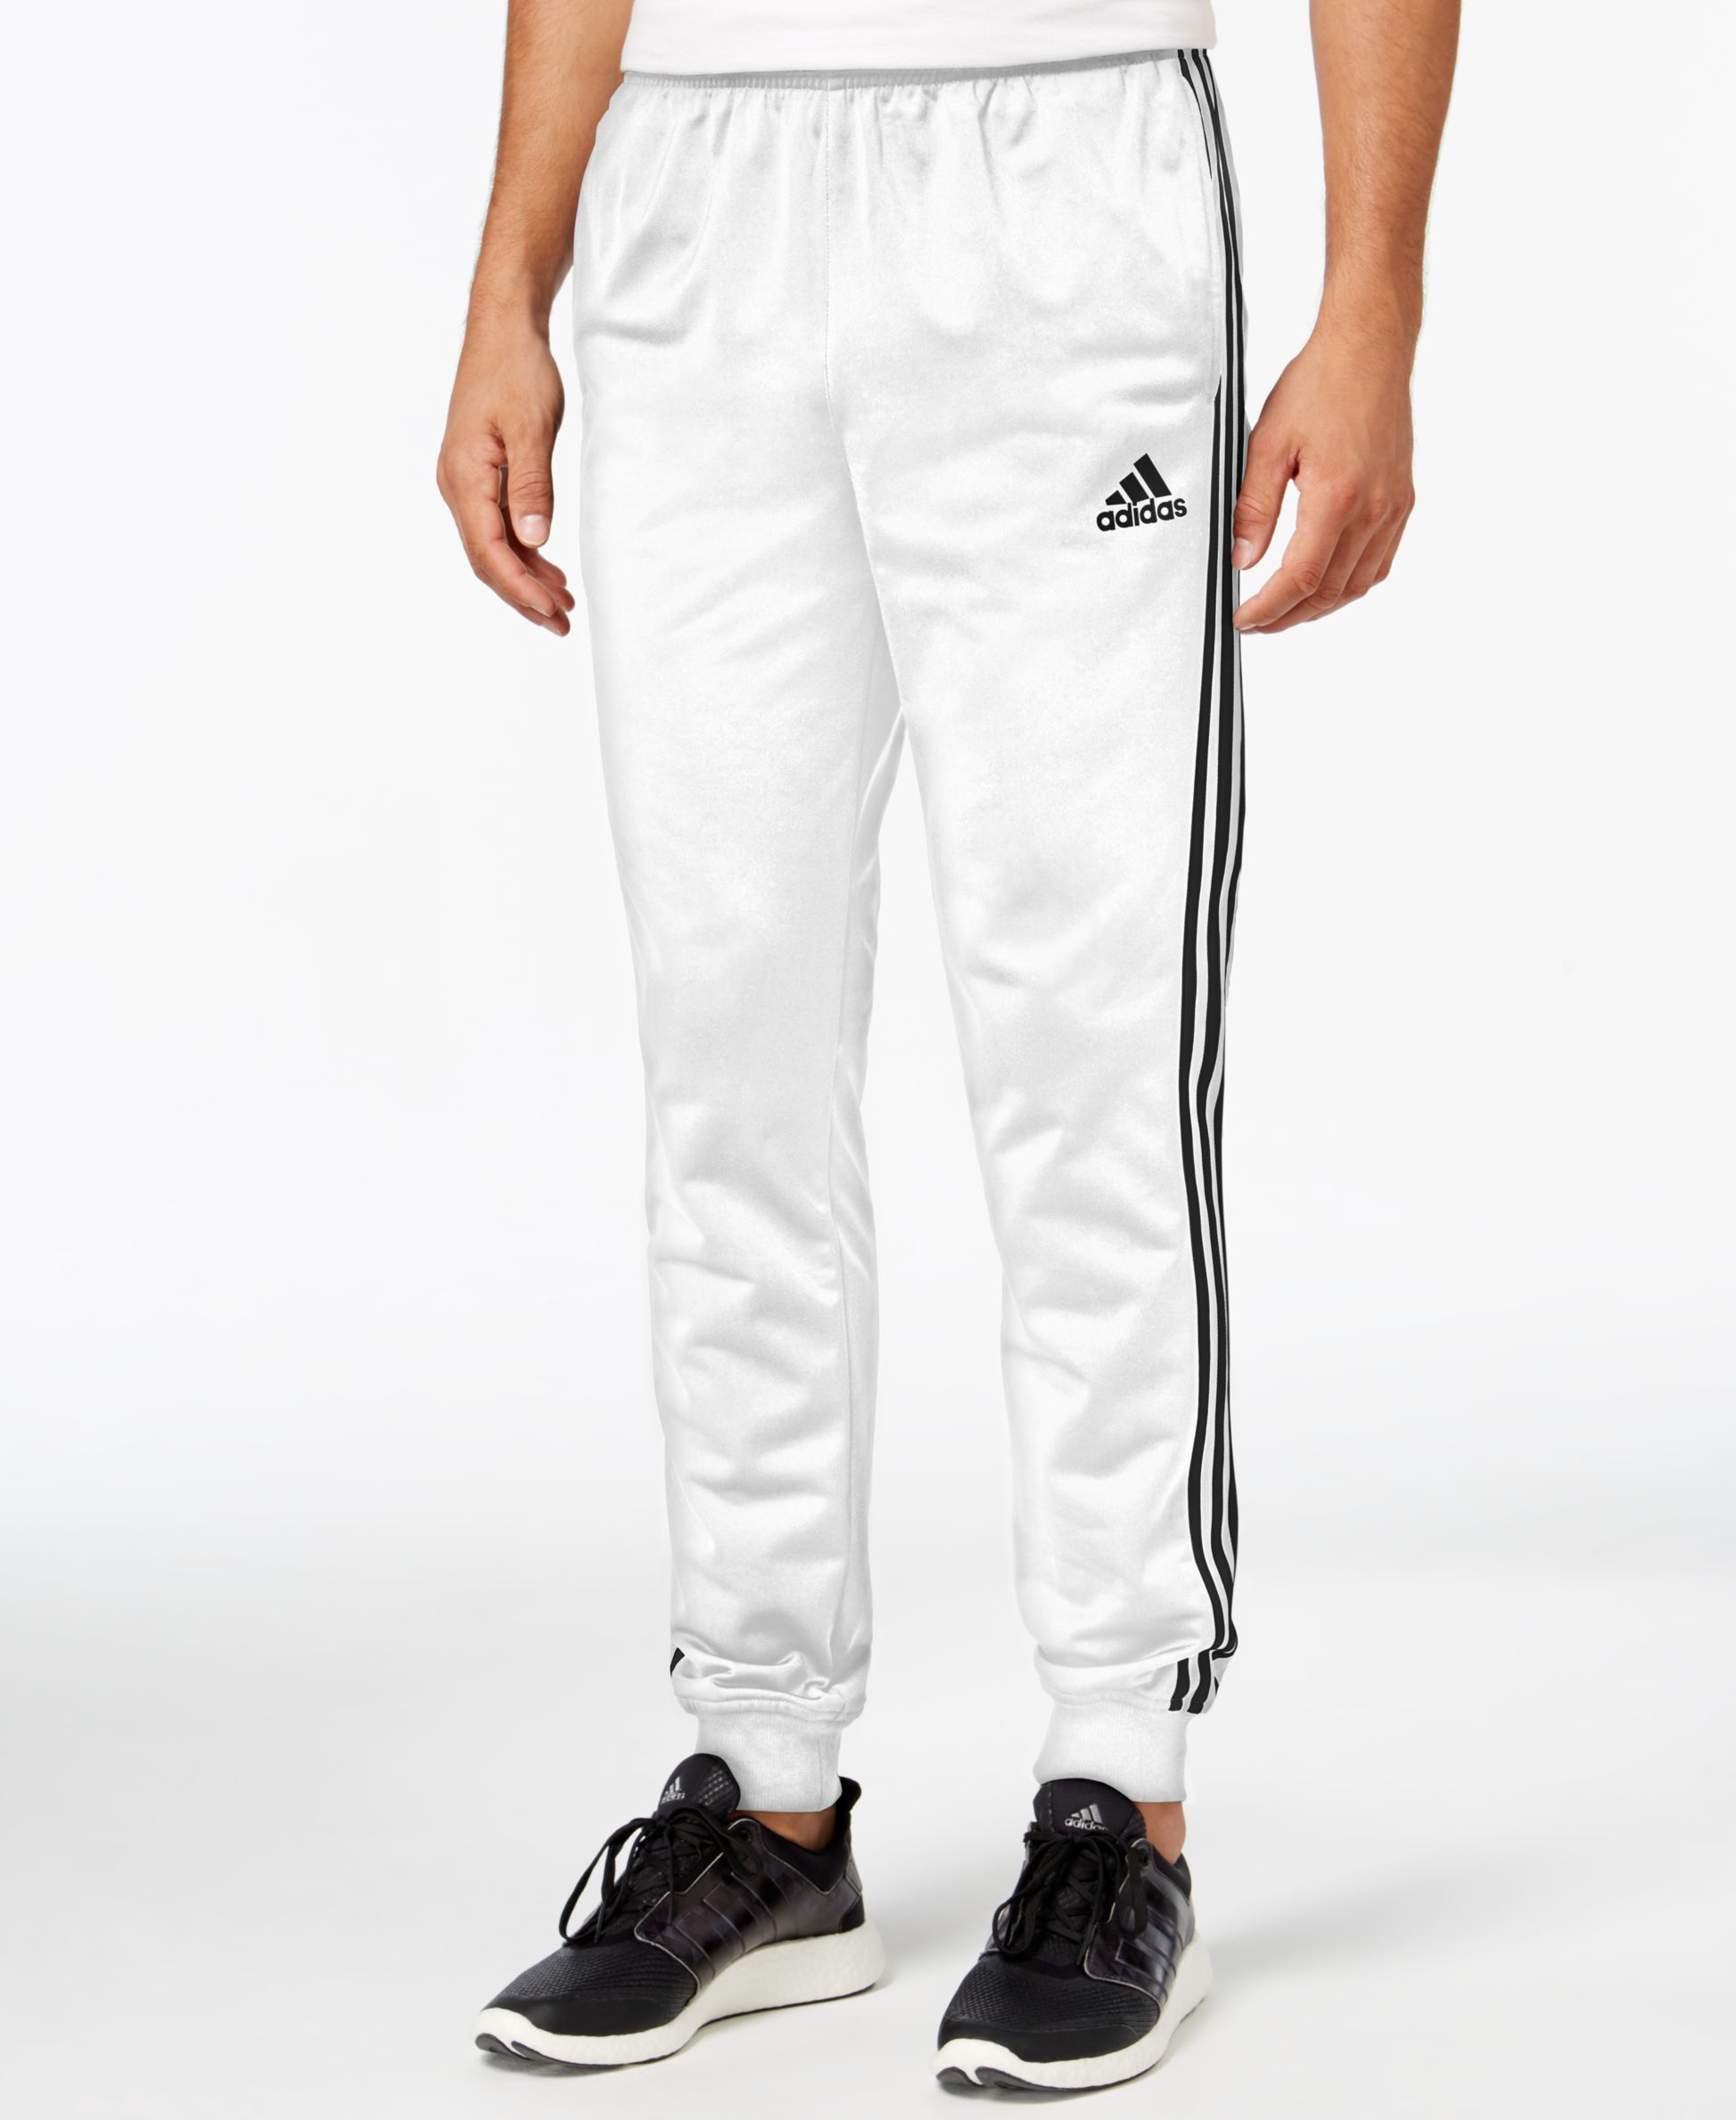 3ab7c2a6f6d adidas Men's Essential Tricot Joggers | fashion in 2019 | Adidas ...